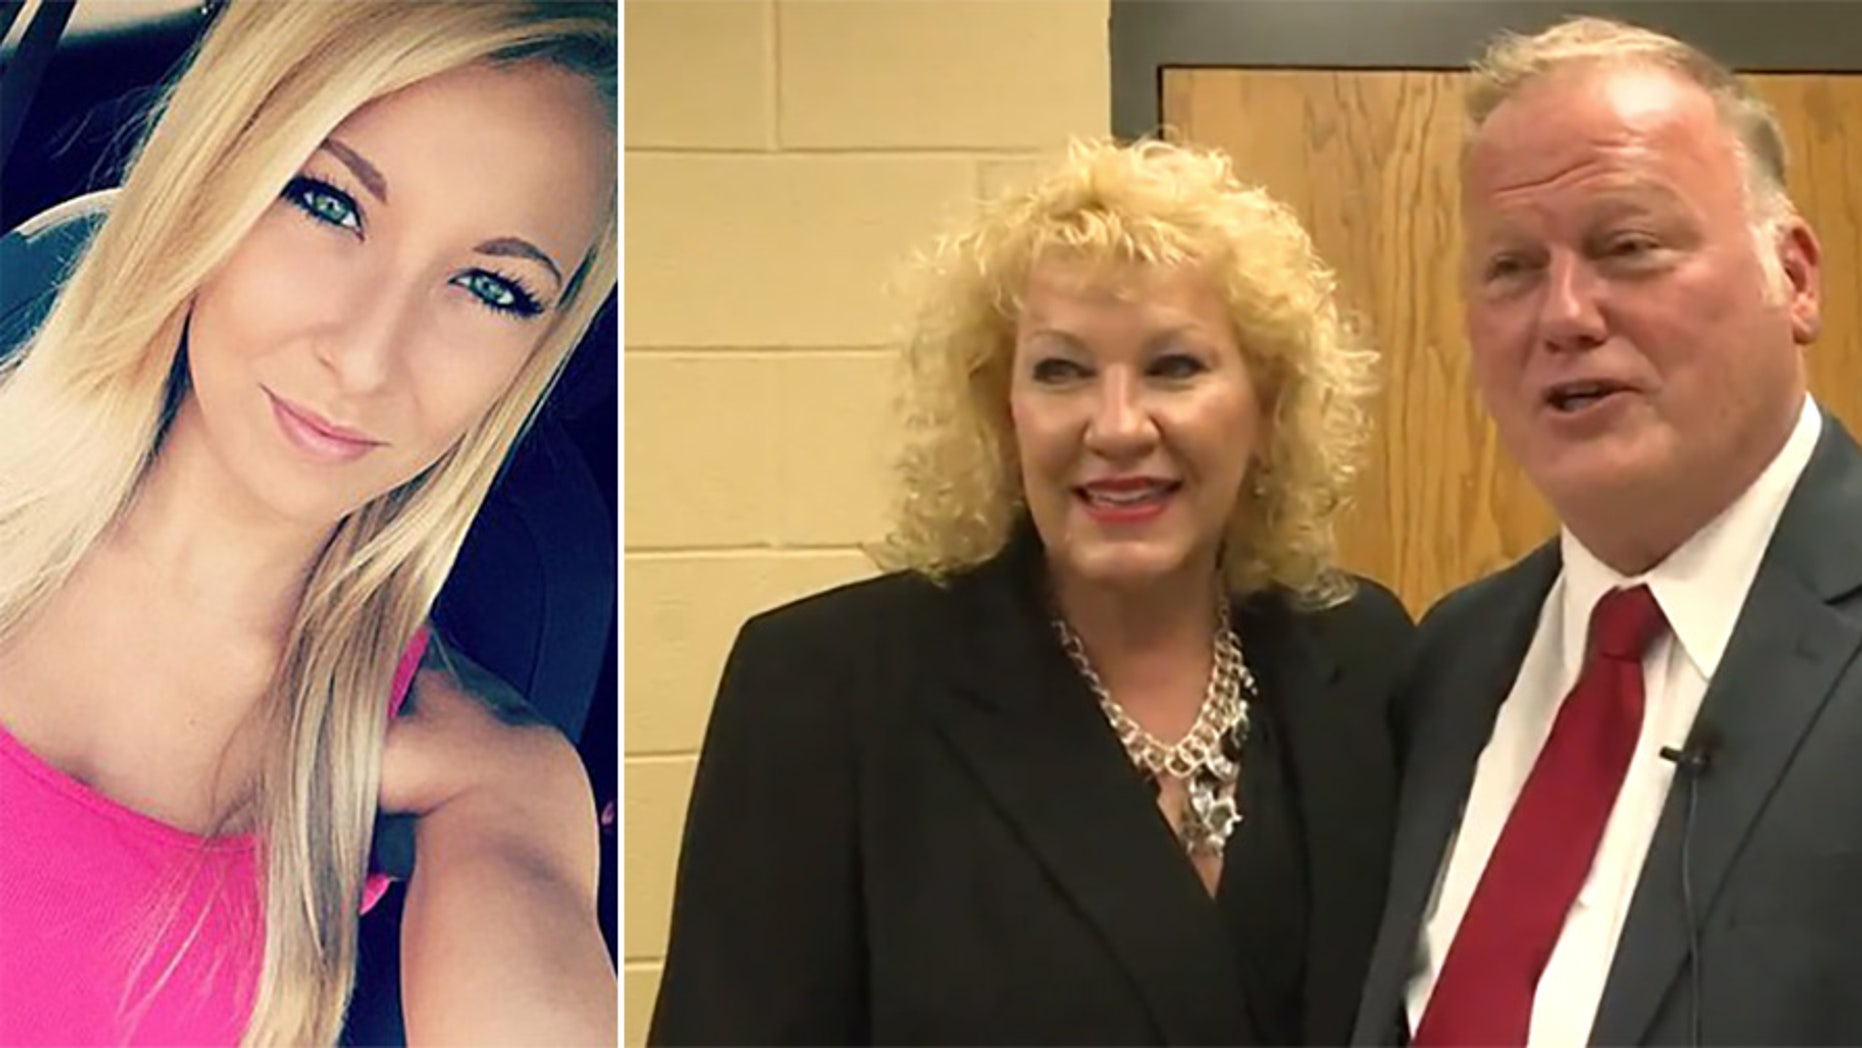 Rebecca Johnson, right, the widow of Kentucky State Rep. Dan Johnson, announced she will be running for his seat. The lawmaker committed suicide Wednesday following sexual assault allegations from Maranda Richmond, left.